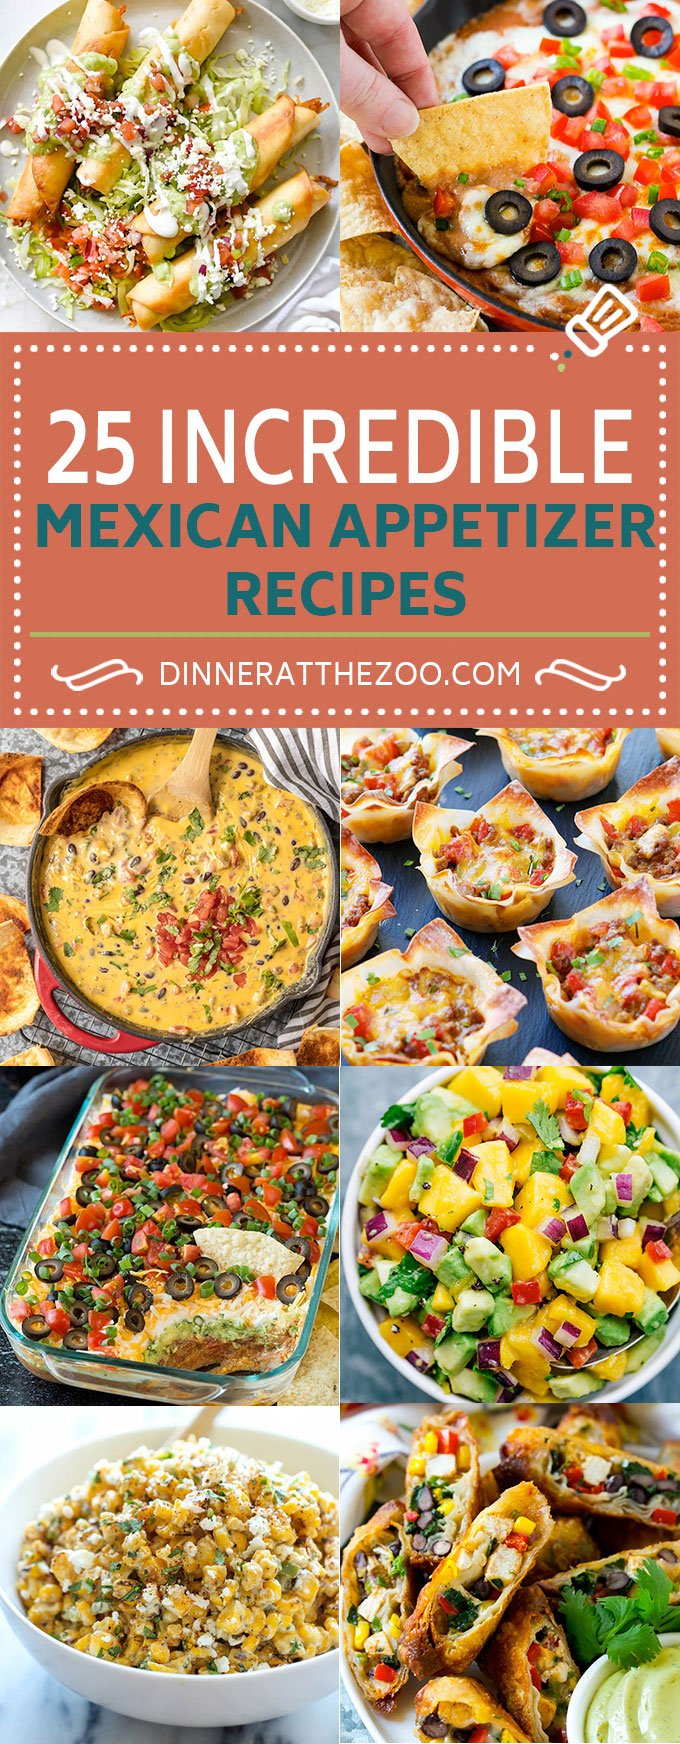 25 Mexican Appetizer Recipes #mexicanfood #appetizer #dinneratthezoo